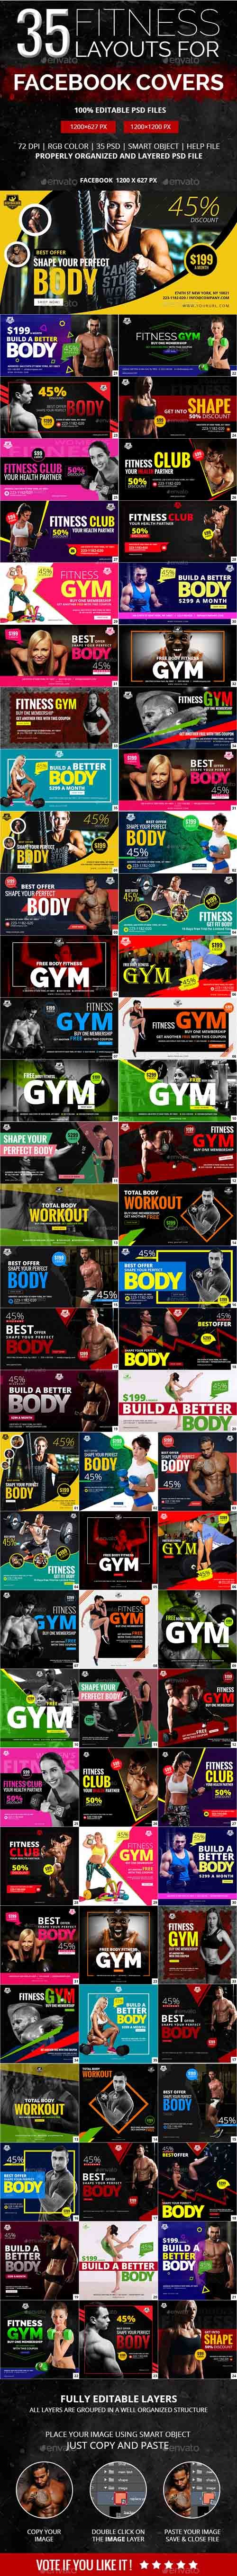 GR - 70 Fitness Facebook Banners 19724623